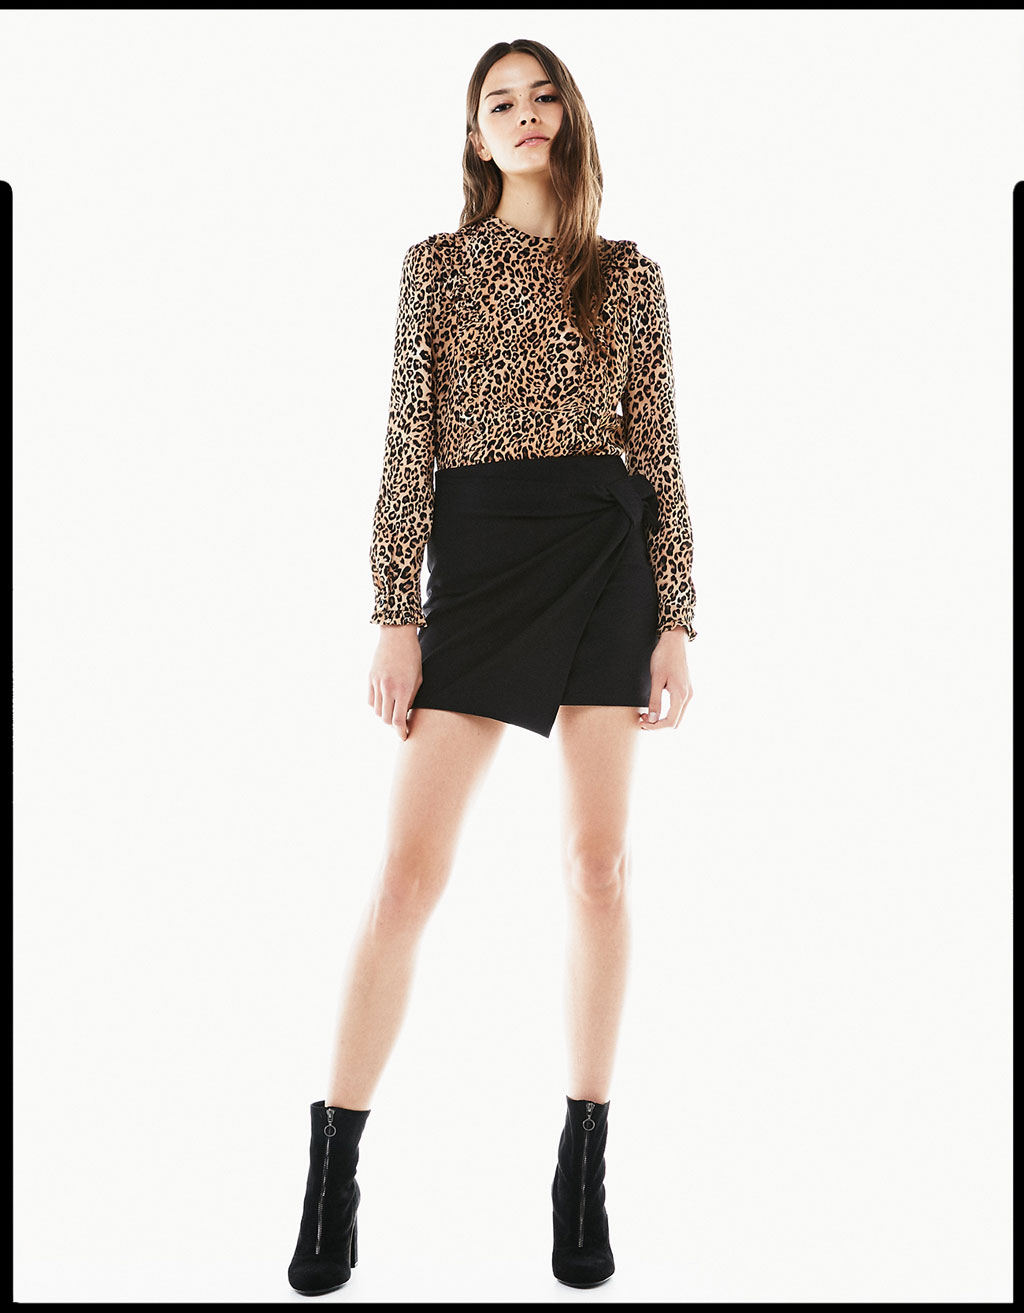 Leopard print frilly blouse